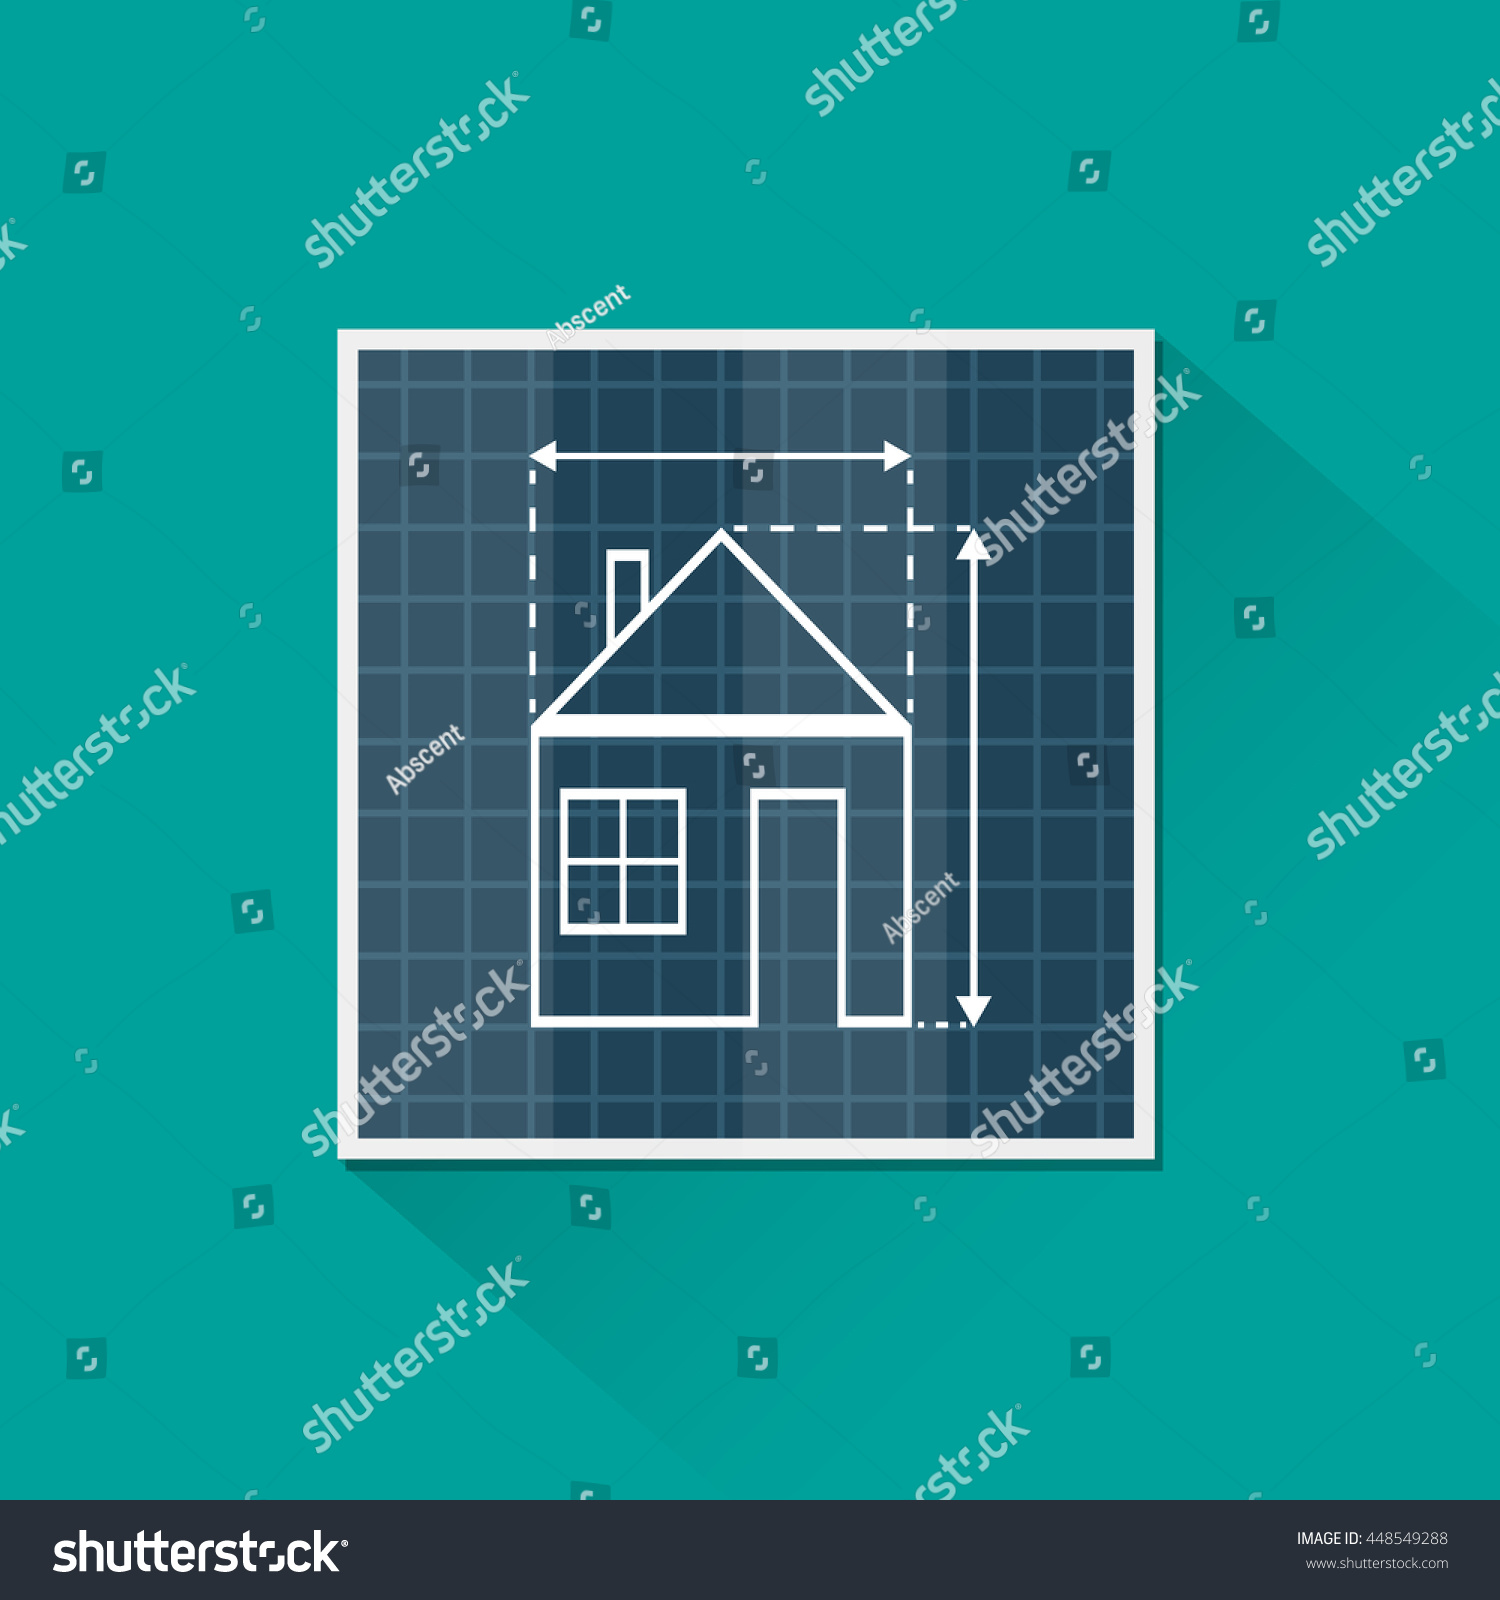 Paper house plan dimension lines blueprint stock vector 448549288 paper house plan with dimension lines blueprint drawing in shape of house sign architecture malvernweather Gallery